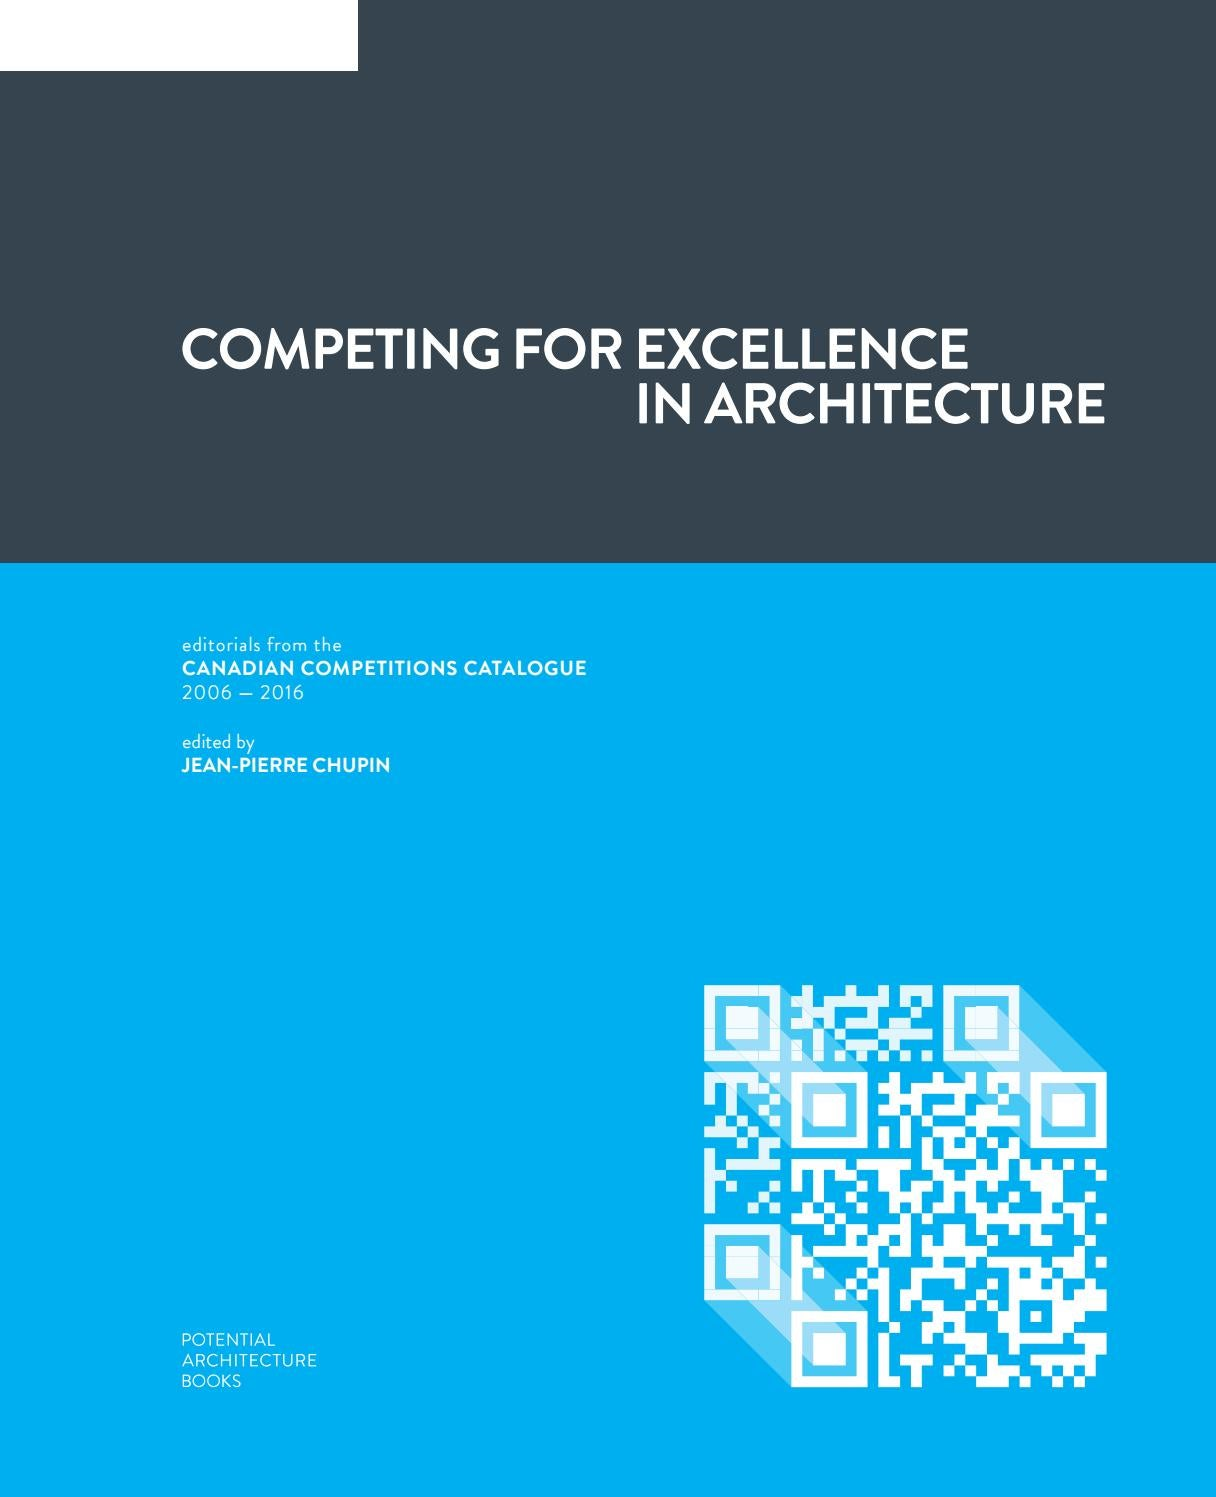 d5eac181628 Competing for Excellence in Architecture  Editorials from the Canadian  Competitions Catalogue by Potential Architecture Books - issuu